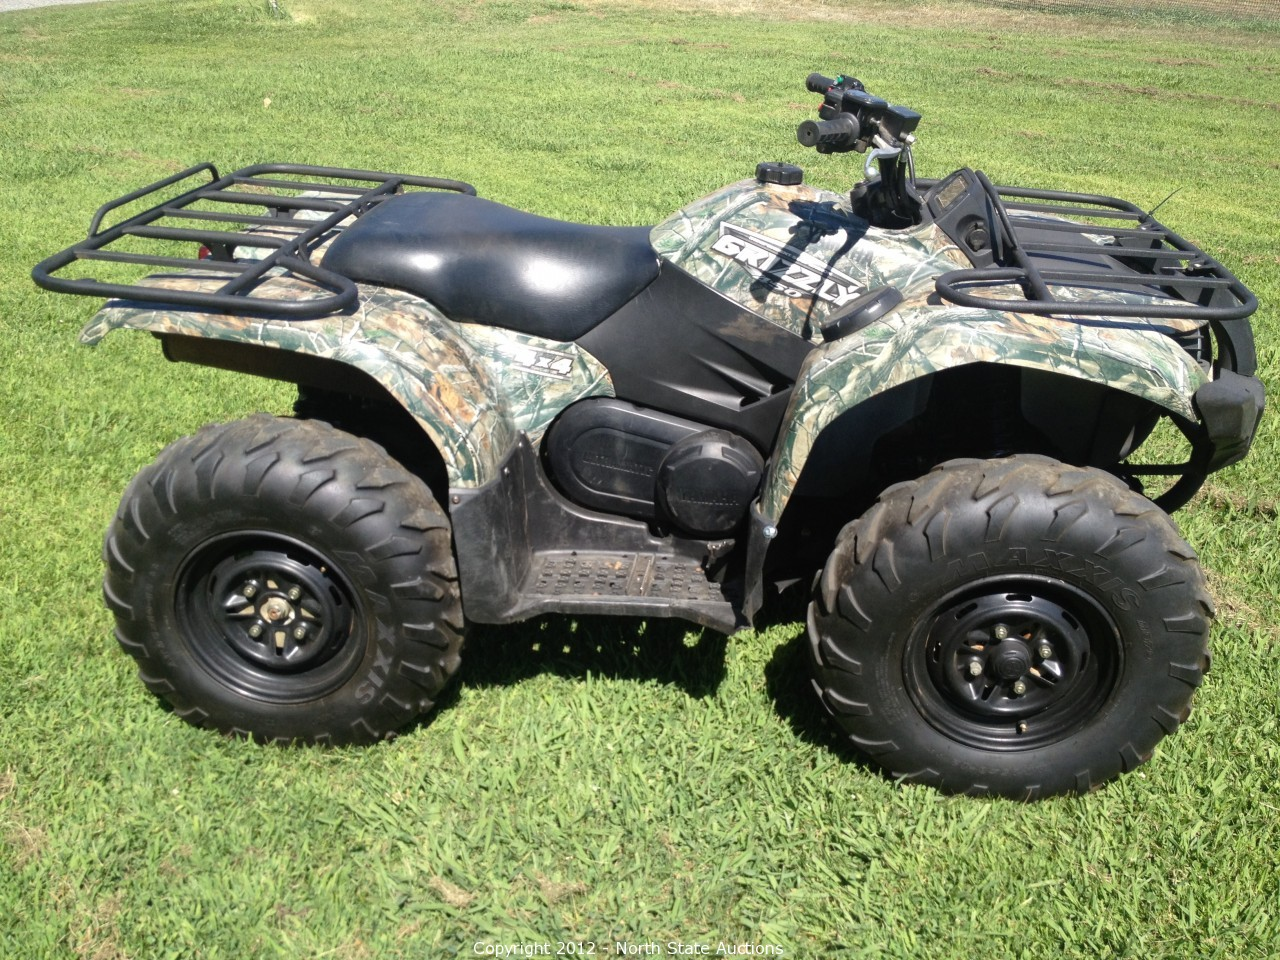 North state auctions auction motorcycle extravaganza for 2009 yamaha grizzly 450 value